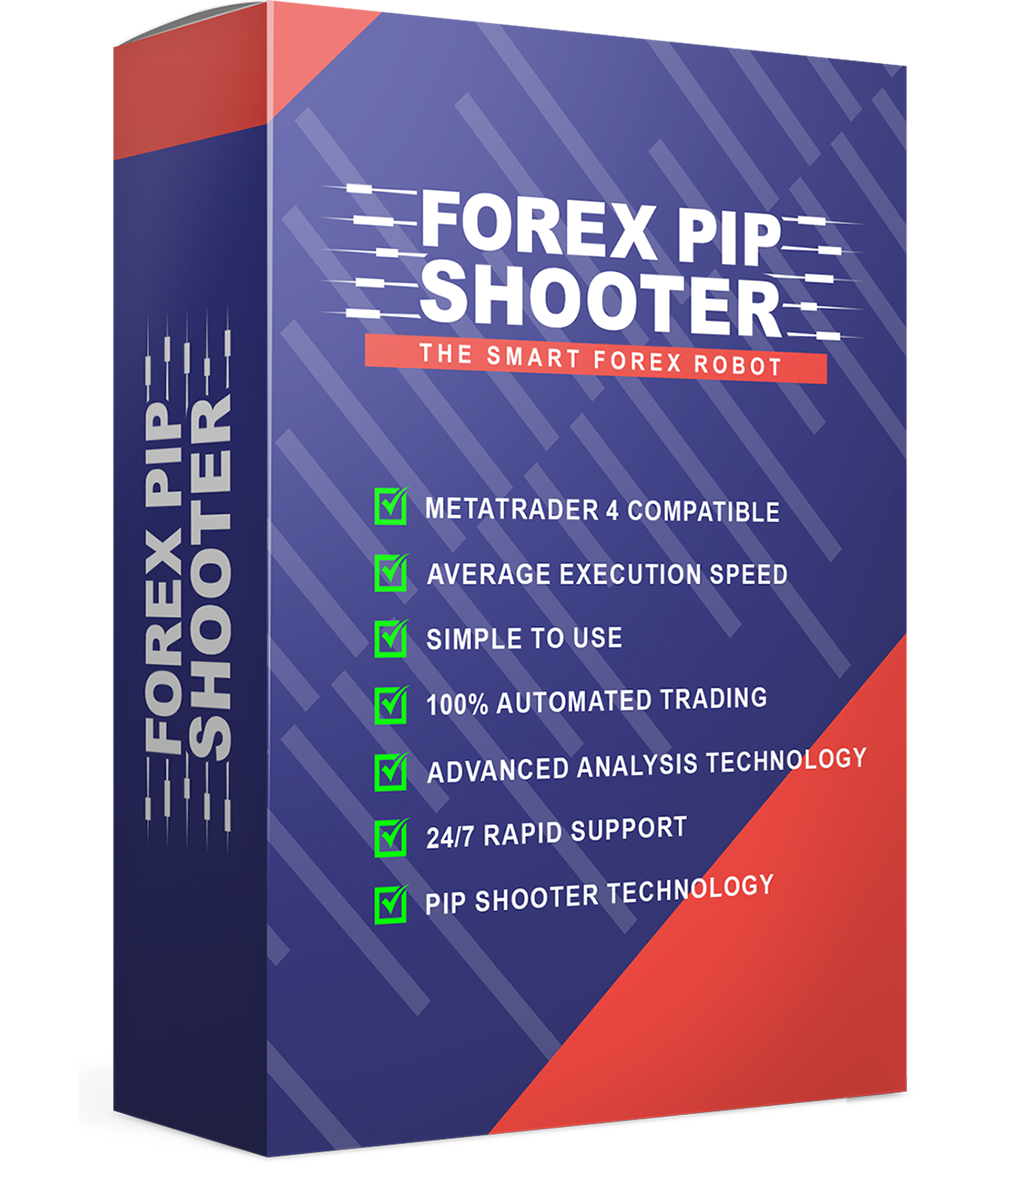 Forex Pip Shooter Shooter Pack